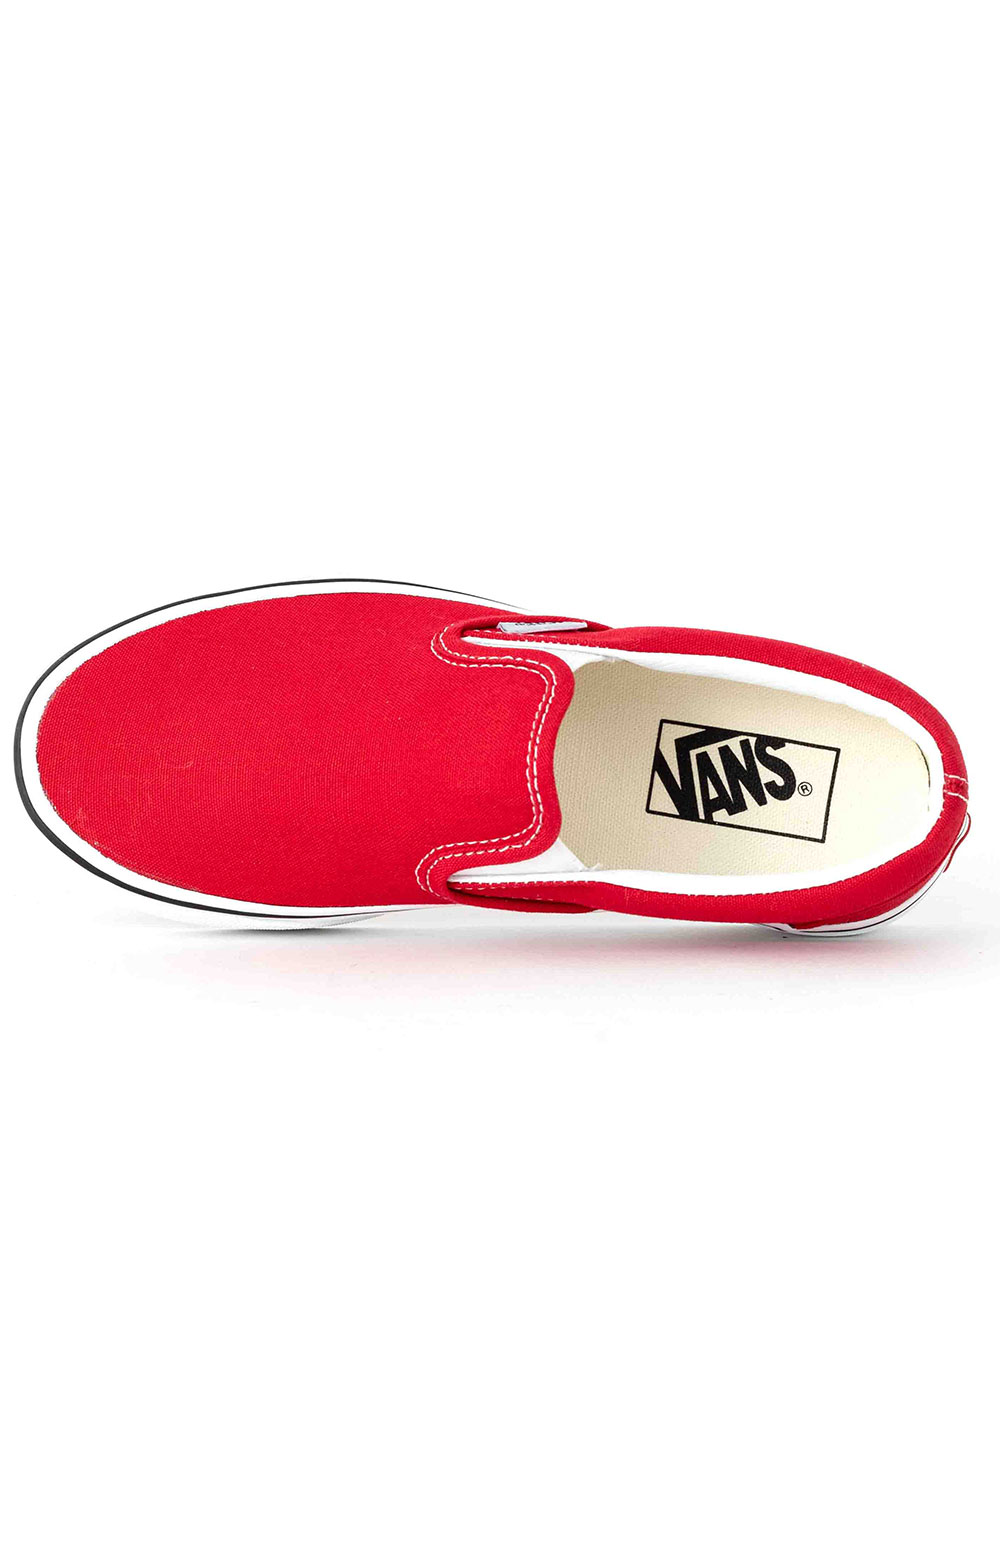 (BV3JV6) Classic Slip-On Shoe - Racing Red 2